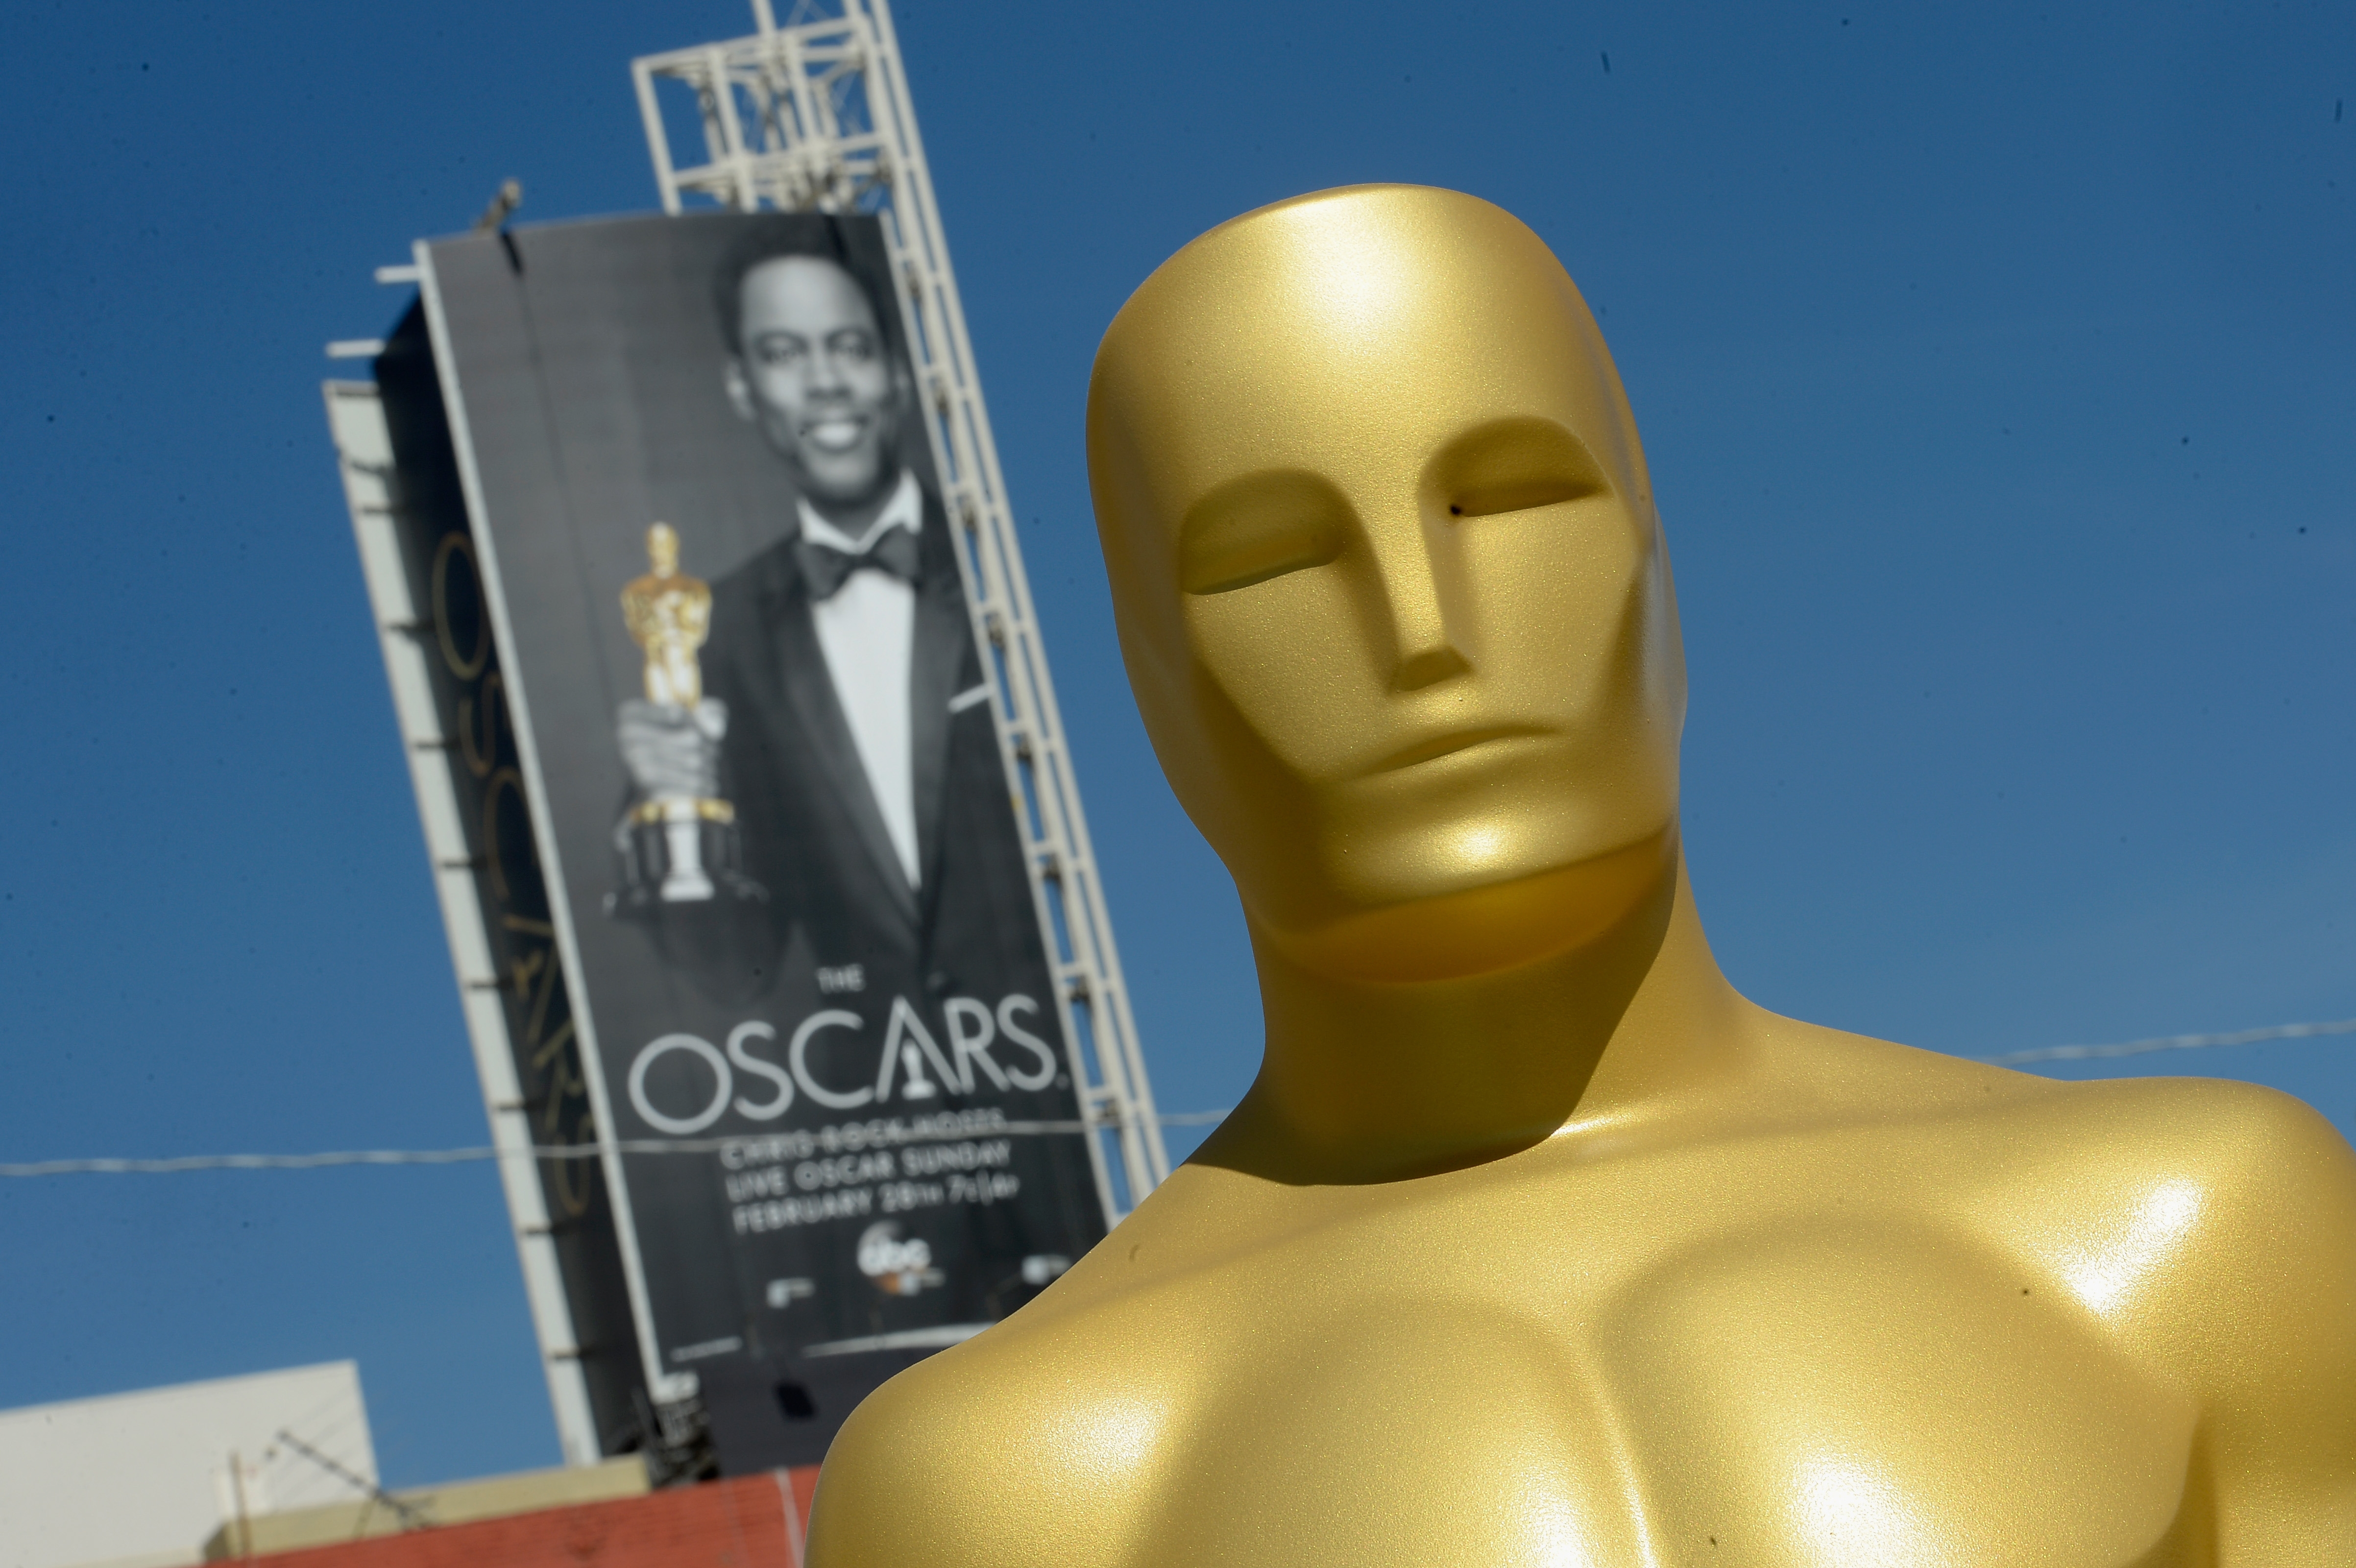 Glittering affair: An Oscar statue is seen as preparations continue for the 88th Annual Academy Awards at Hollywood & Highland Center on Tuesday in Hollywood.